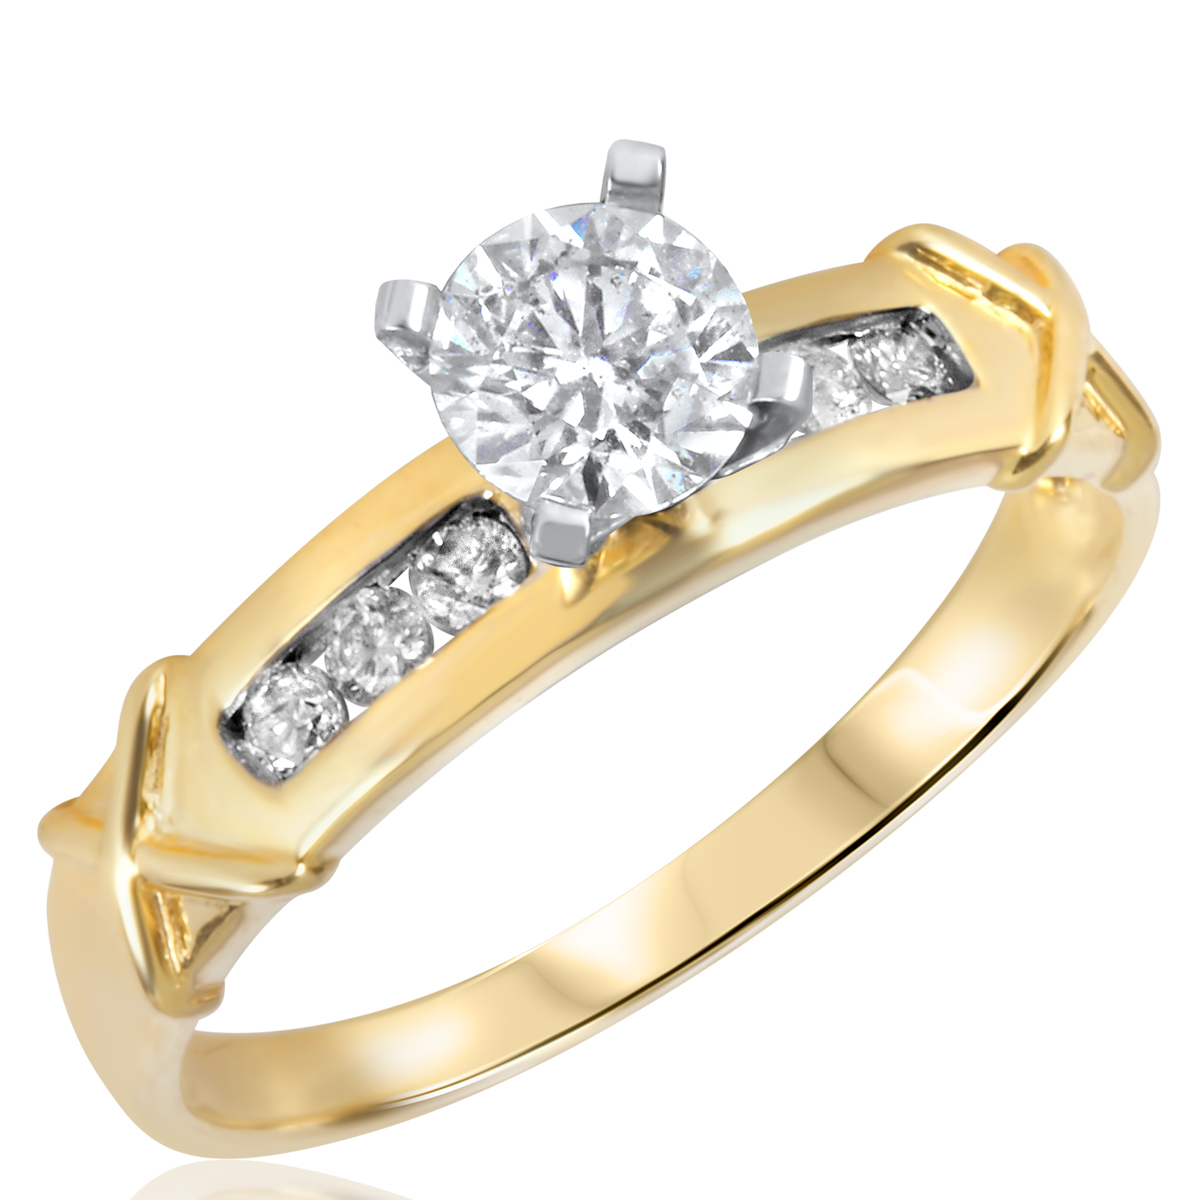 2/3 CT. T.W. Diamond Ladies Engagement Ring 14K Yellow Gold